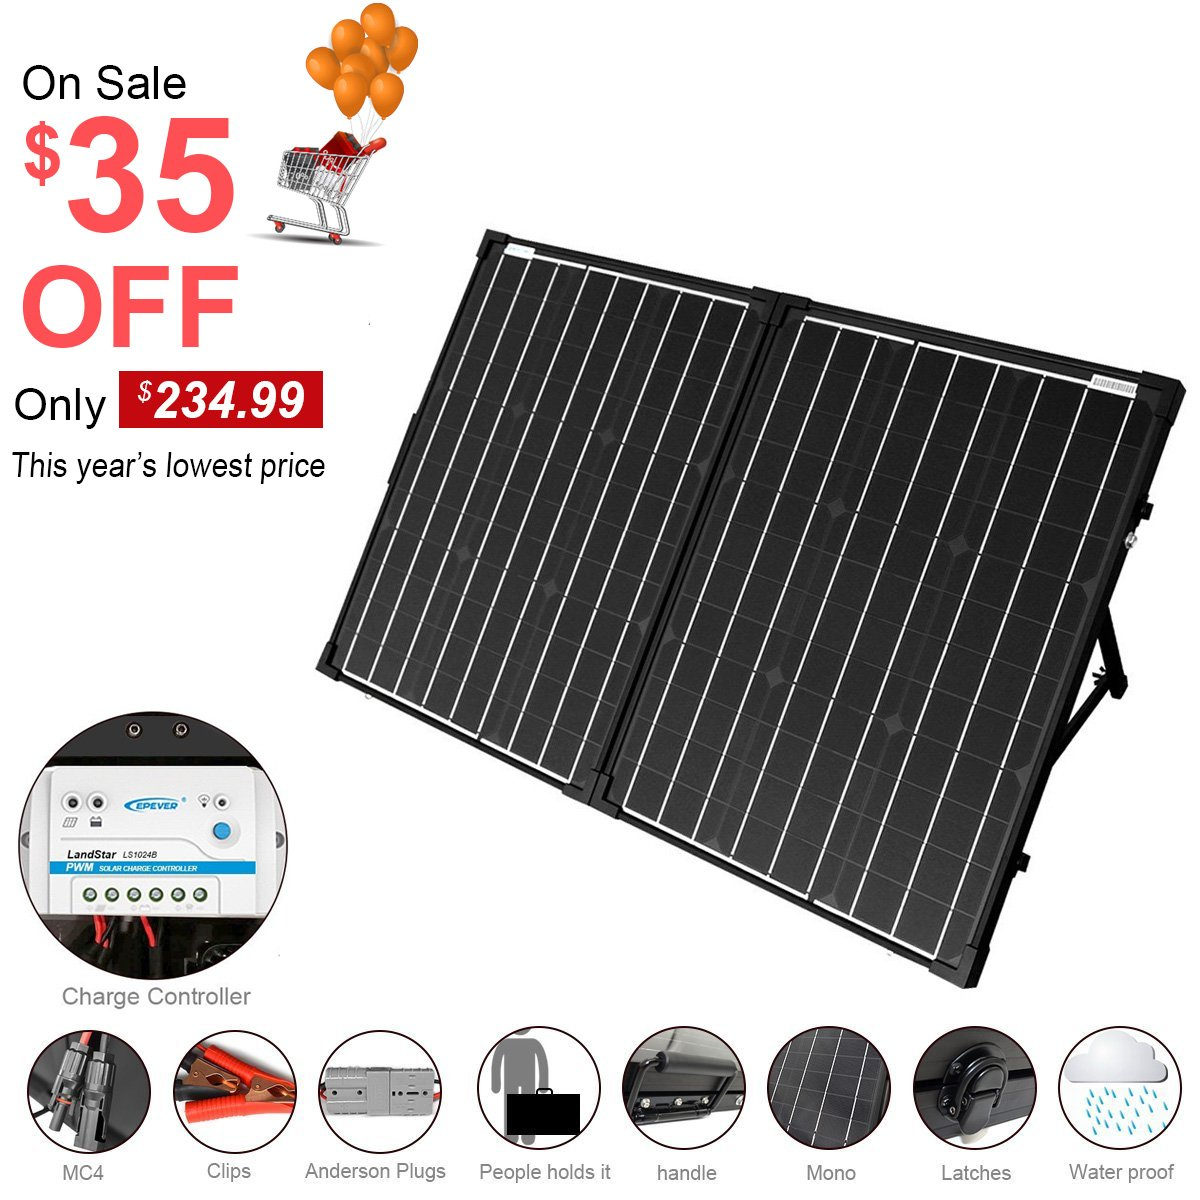 ACOPOWER 100W Foldable Solar Panel Kit, 12V Battery and Generator Ready Suitcase with Charge Controller